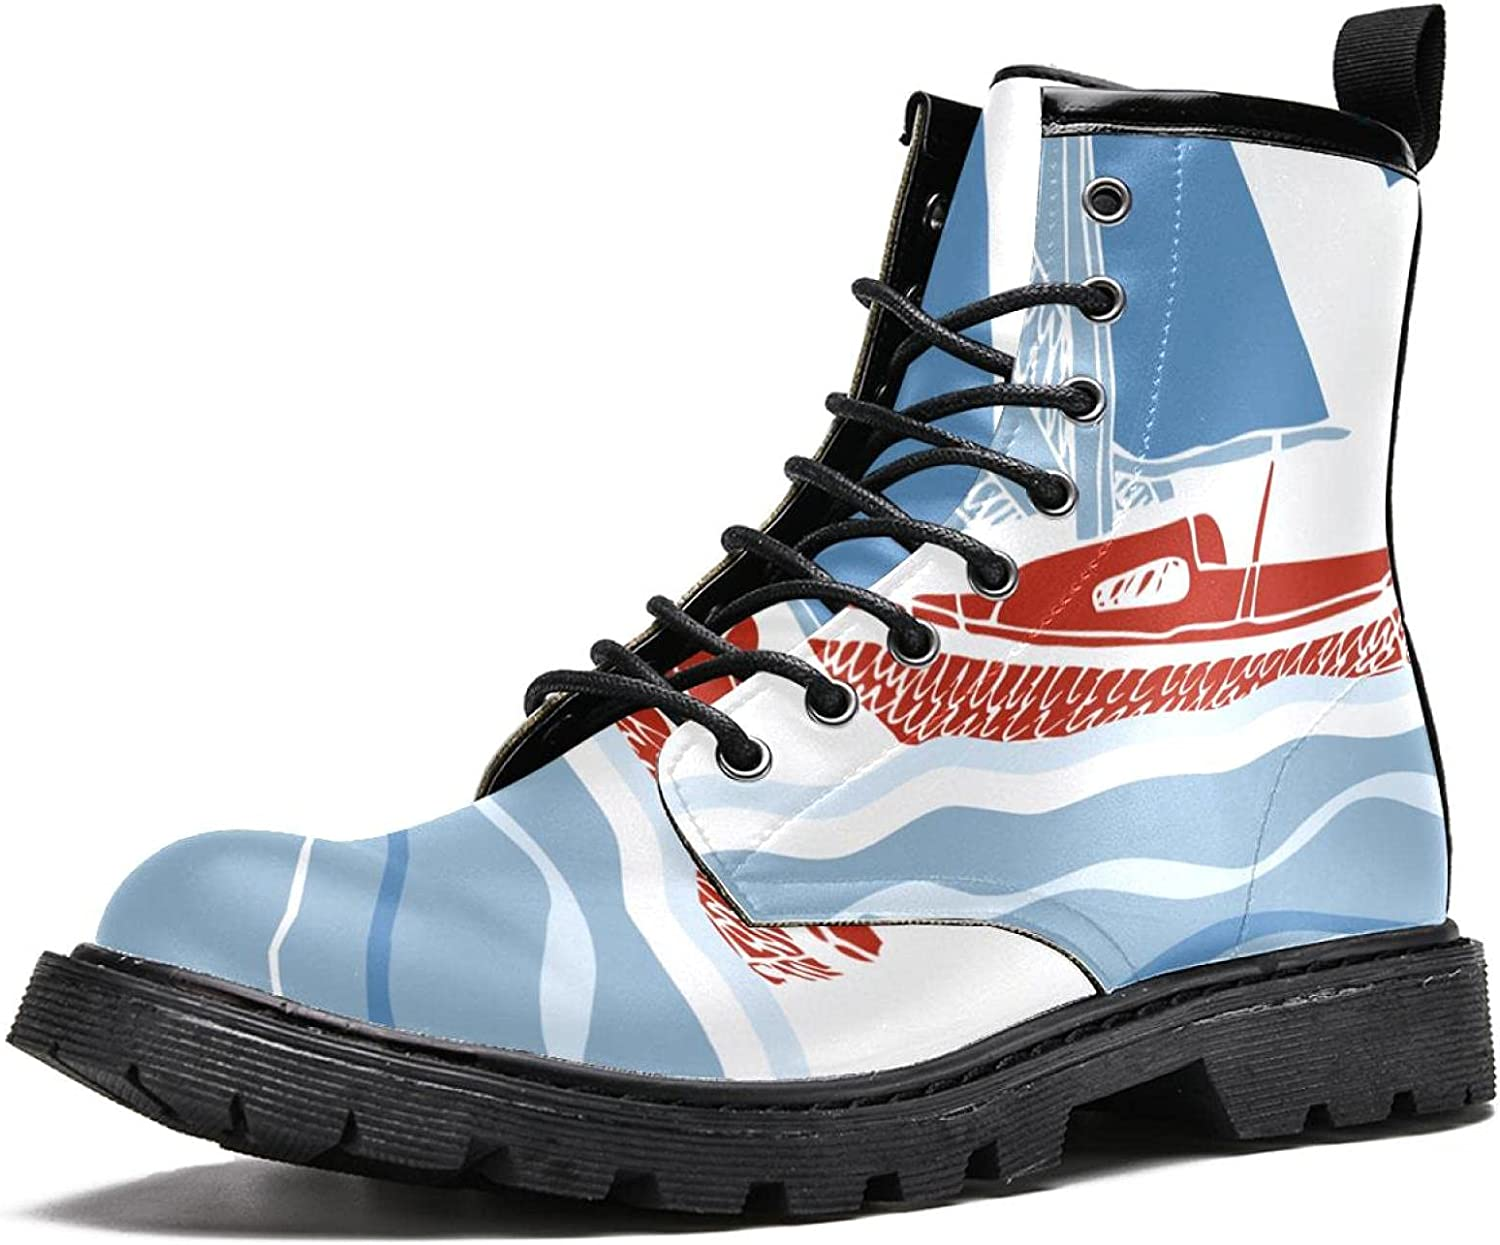 Max 71% OFF Cartoon Spring new work sailboat Women's Stylish High Top Du Boots Hiking